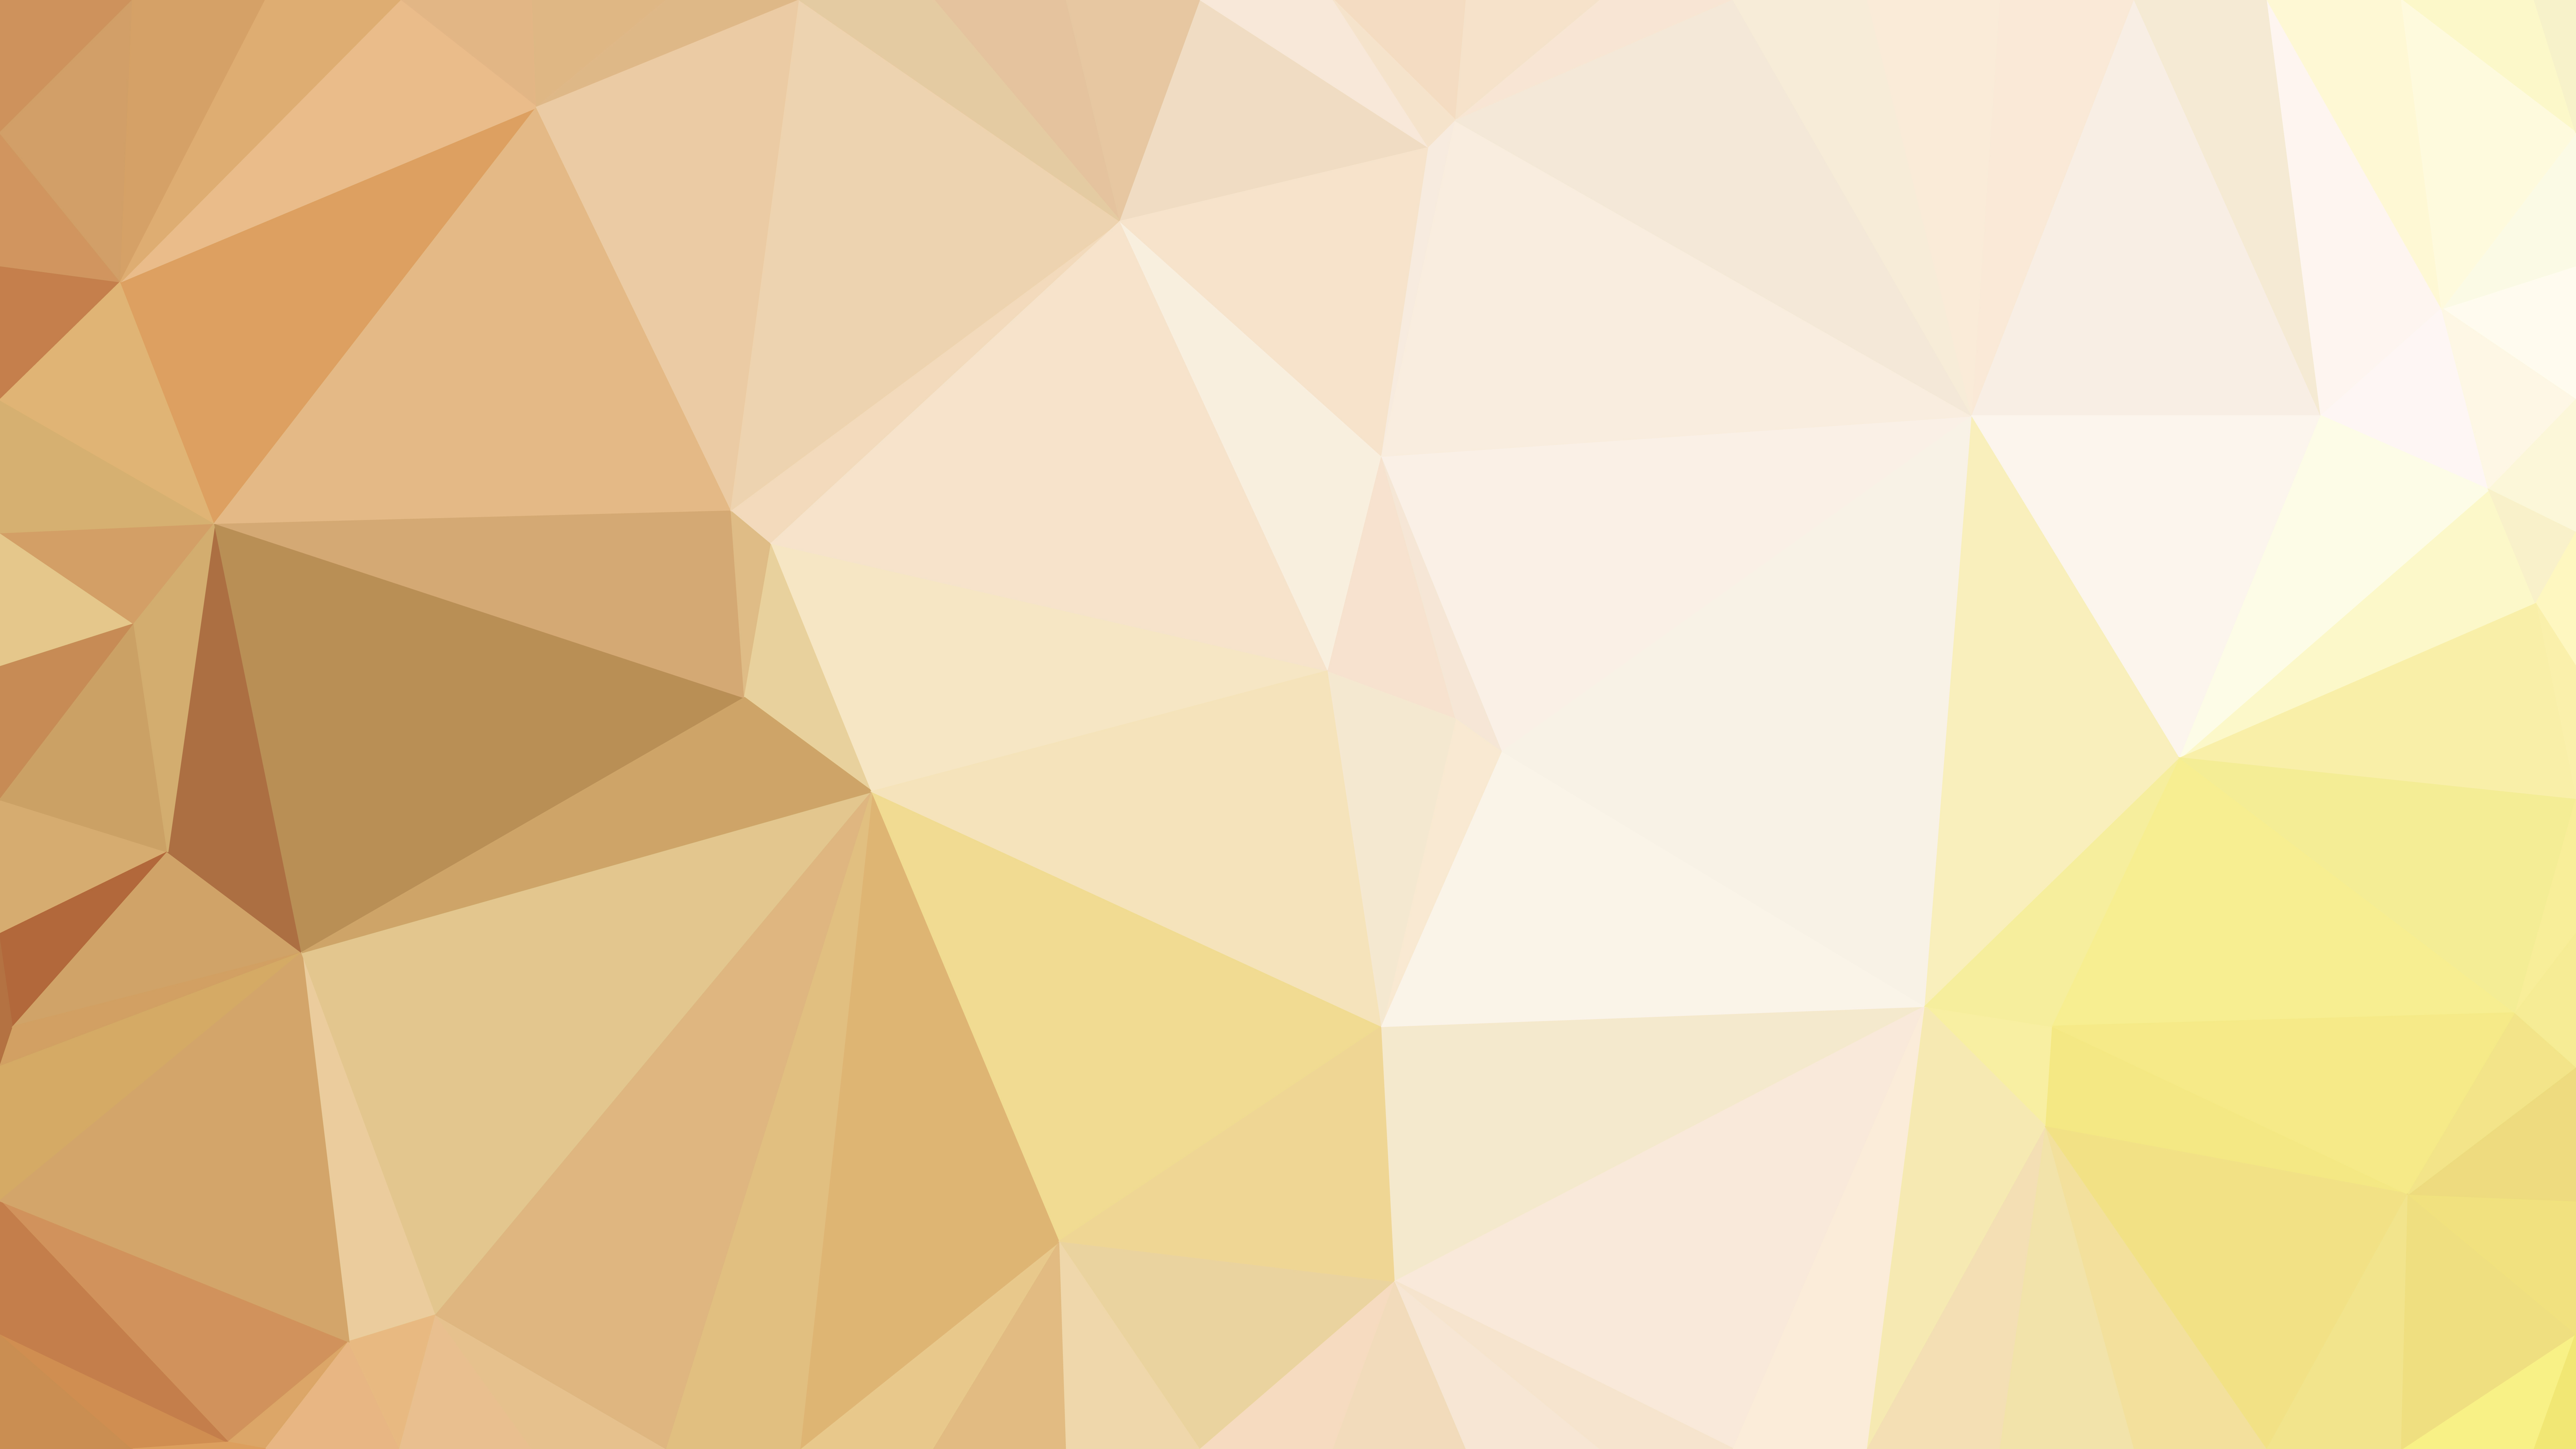 Light Brown Polygon Abstract Background Illustrator 8000x4500